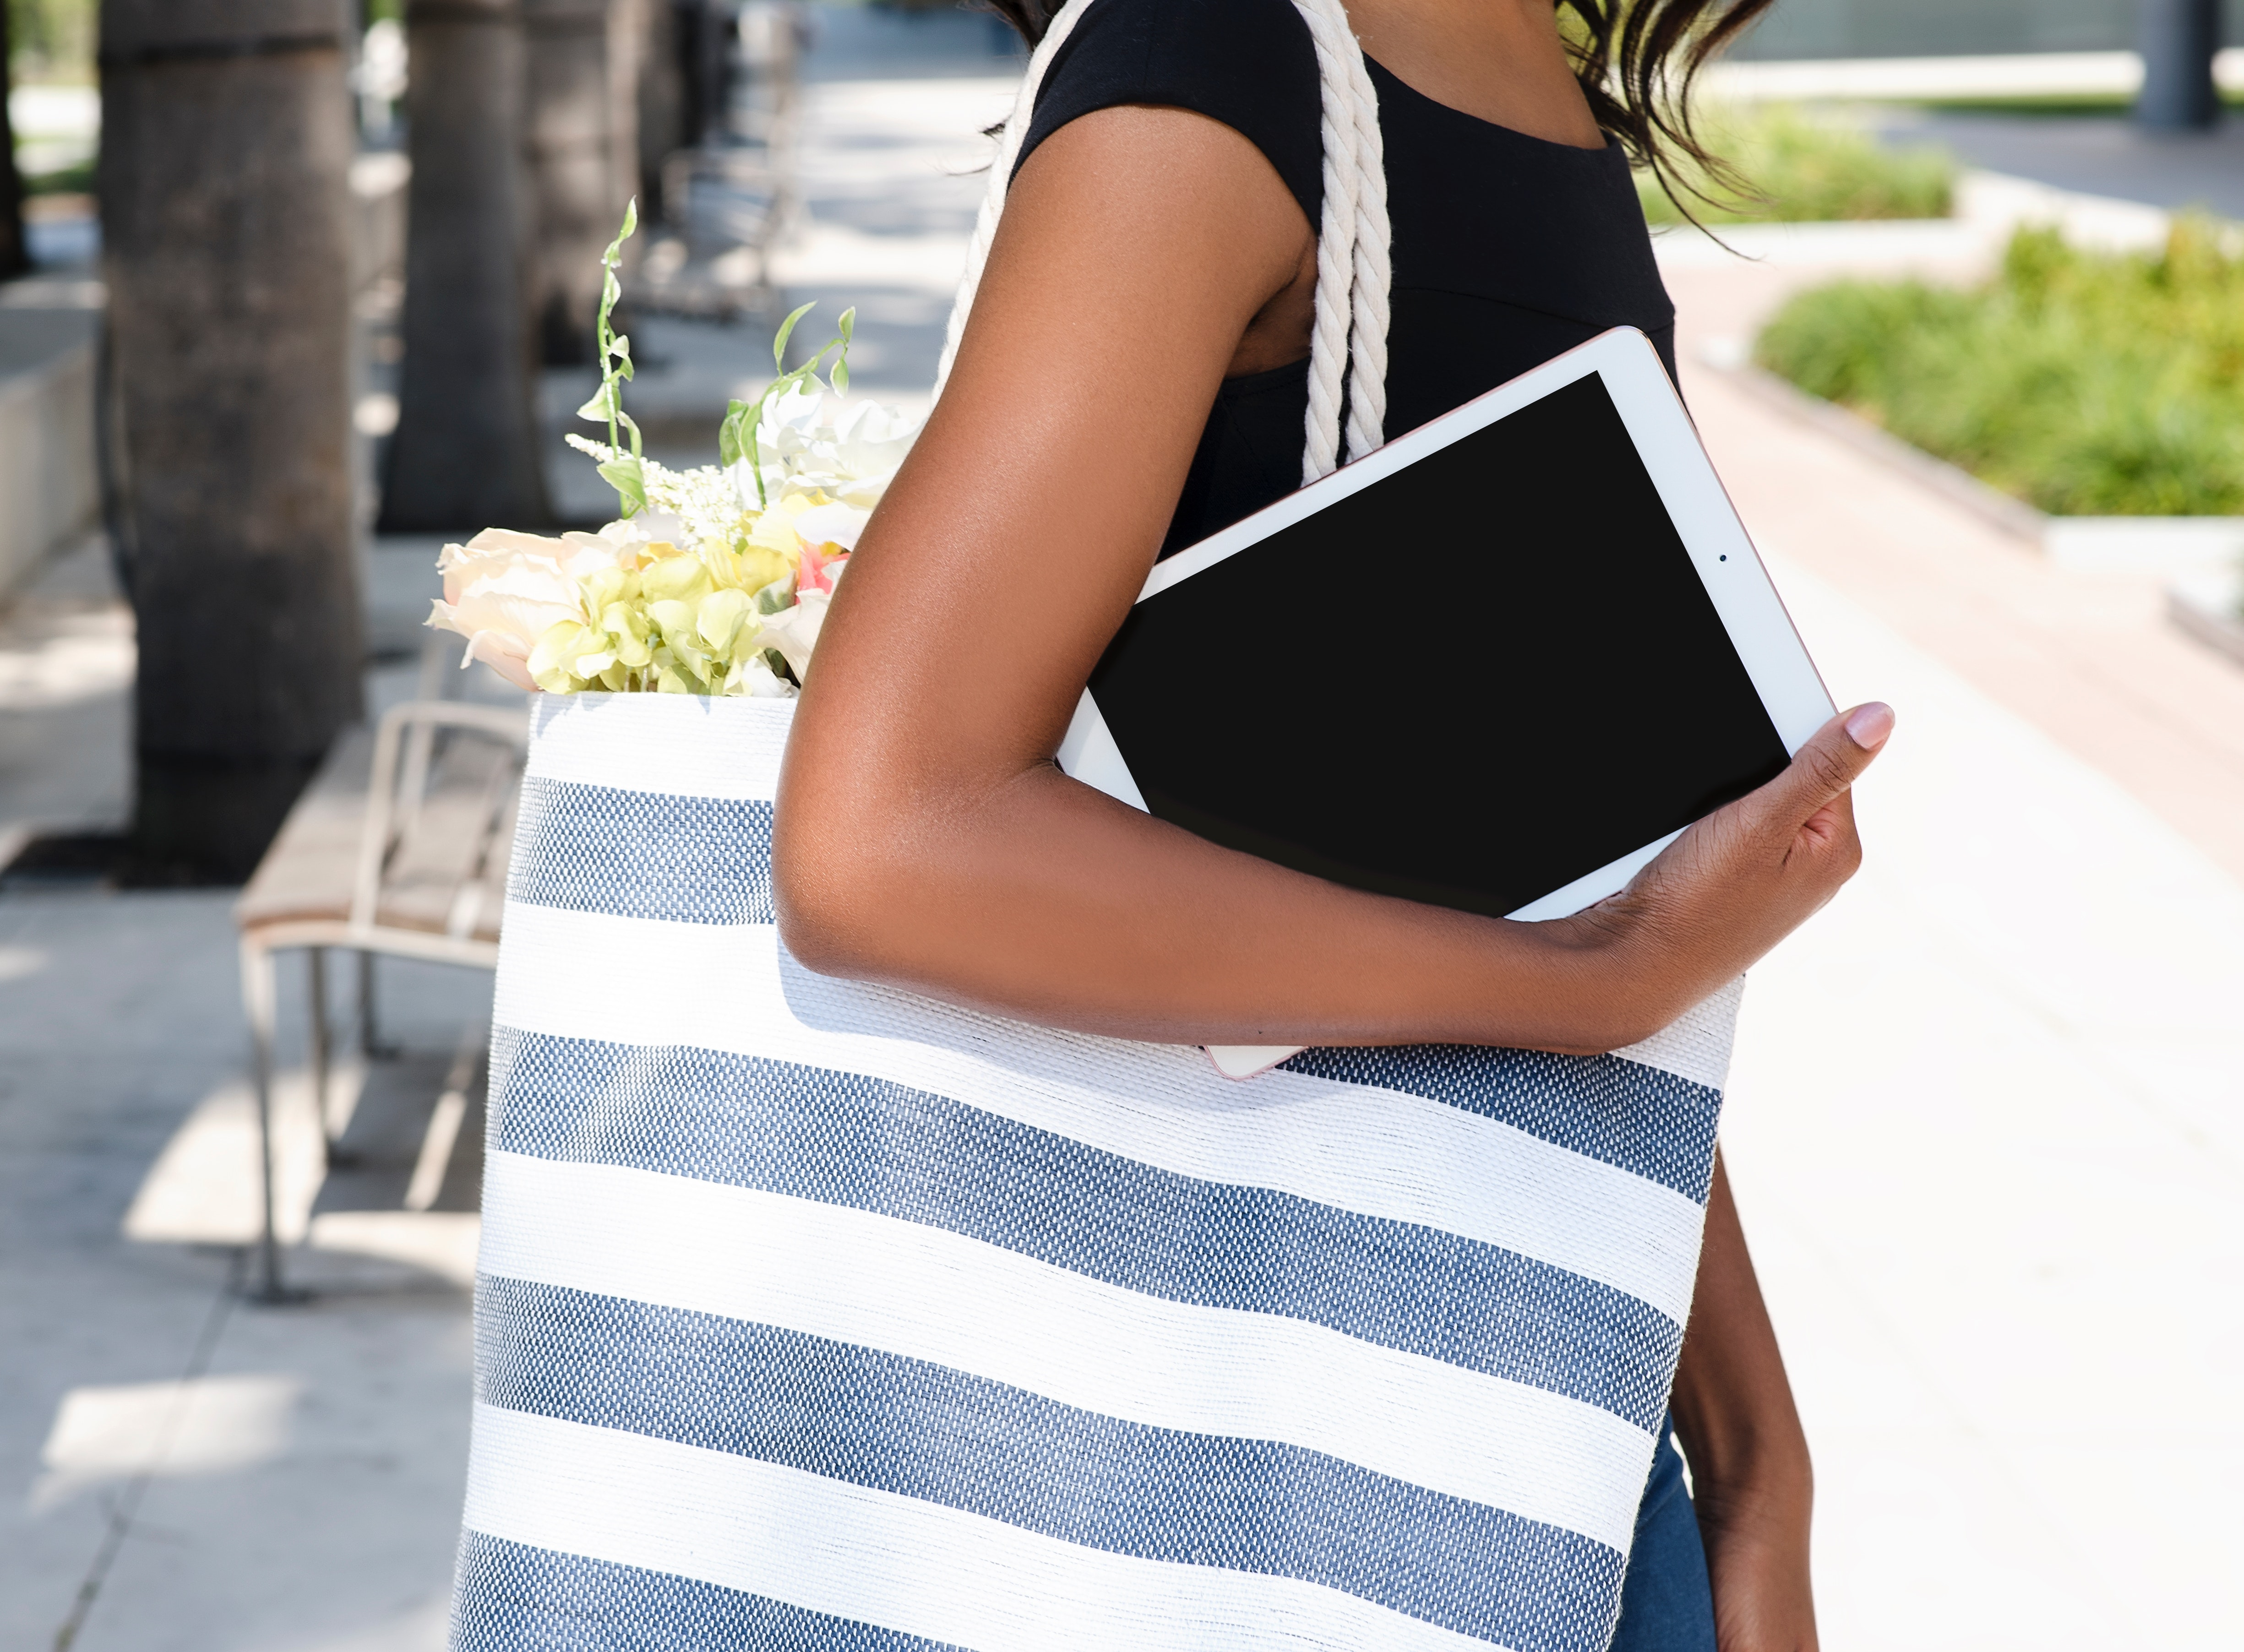 woman carrying an ipad and a large tote bag